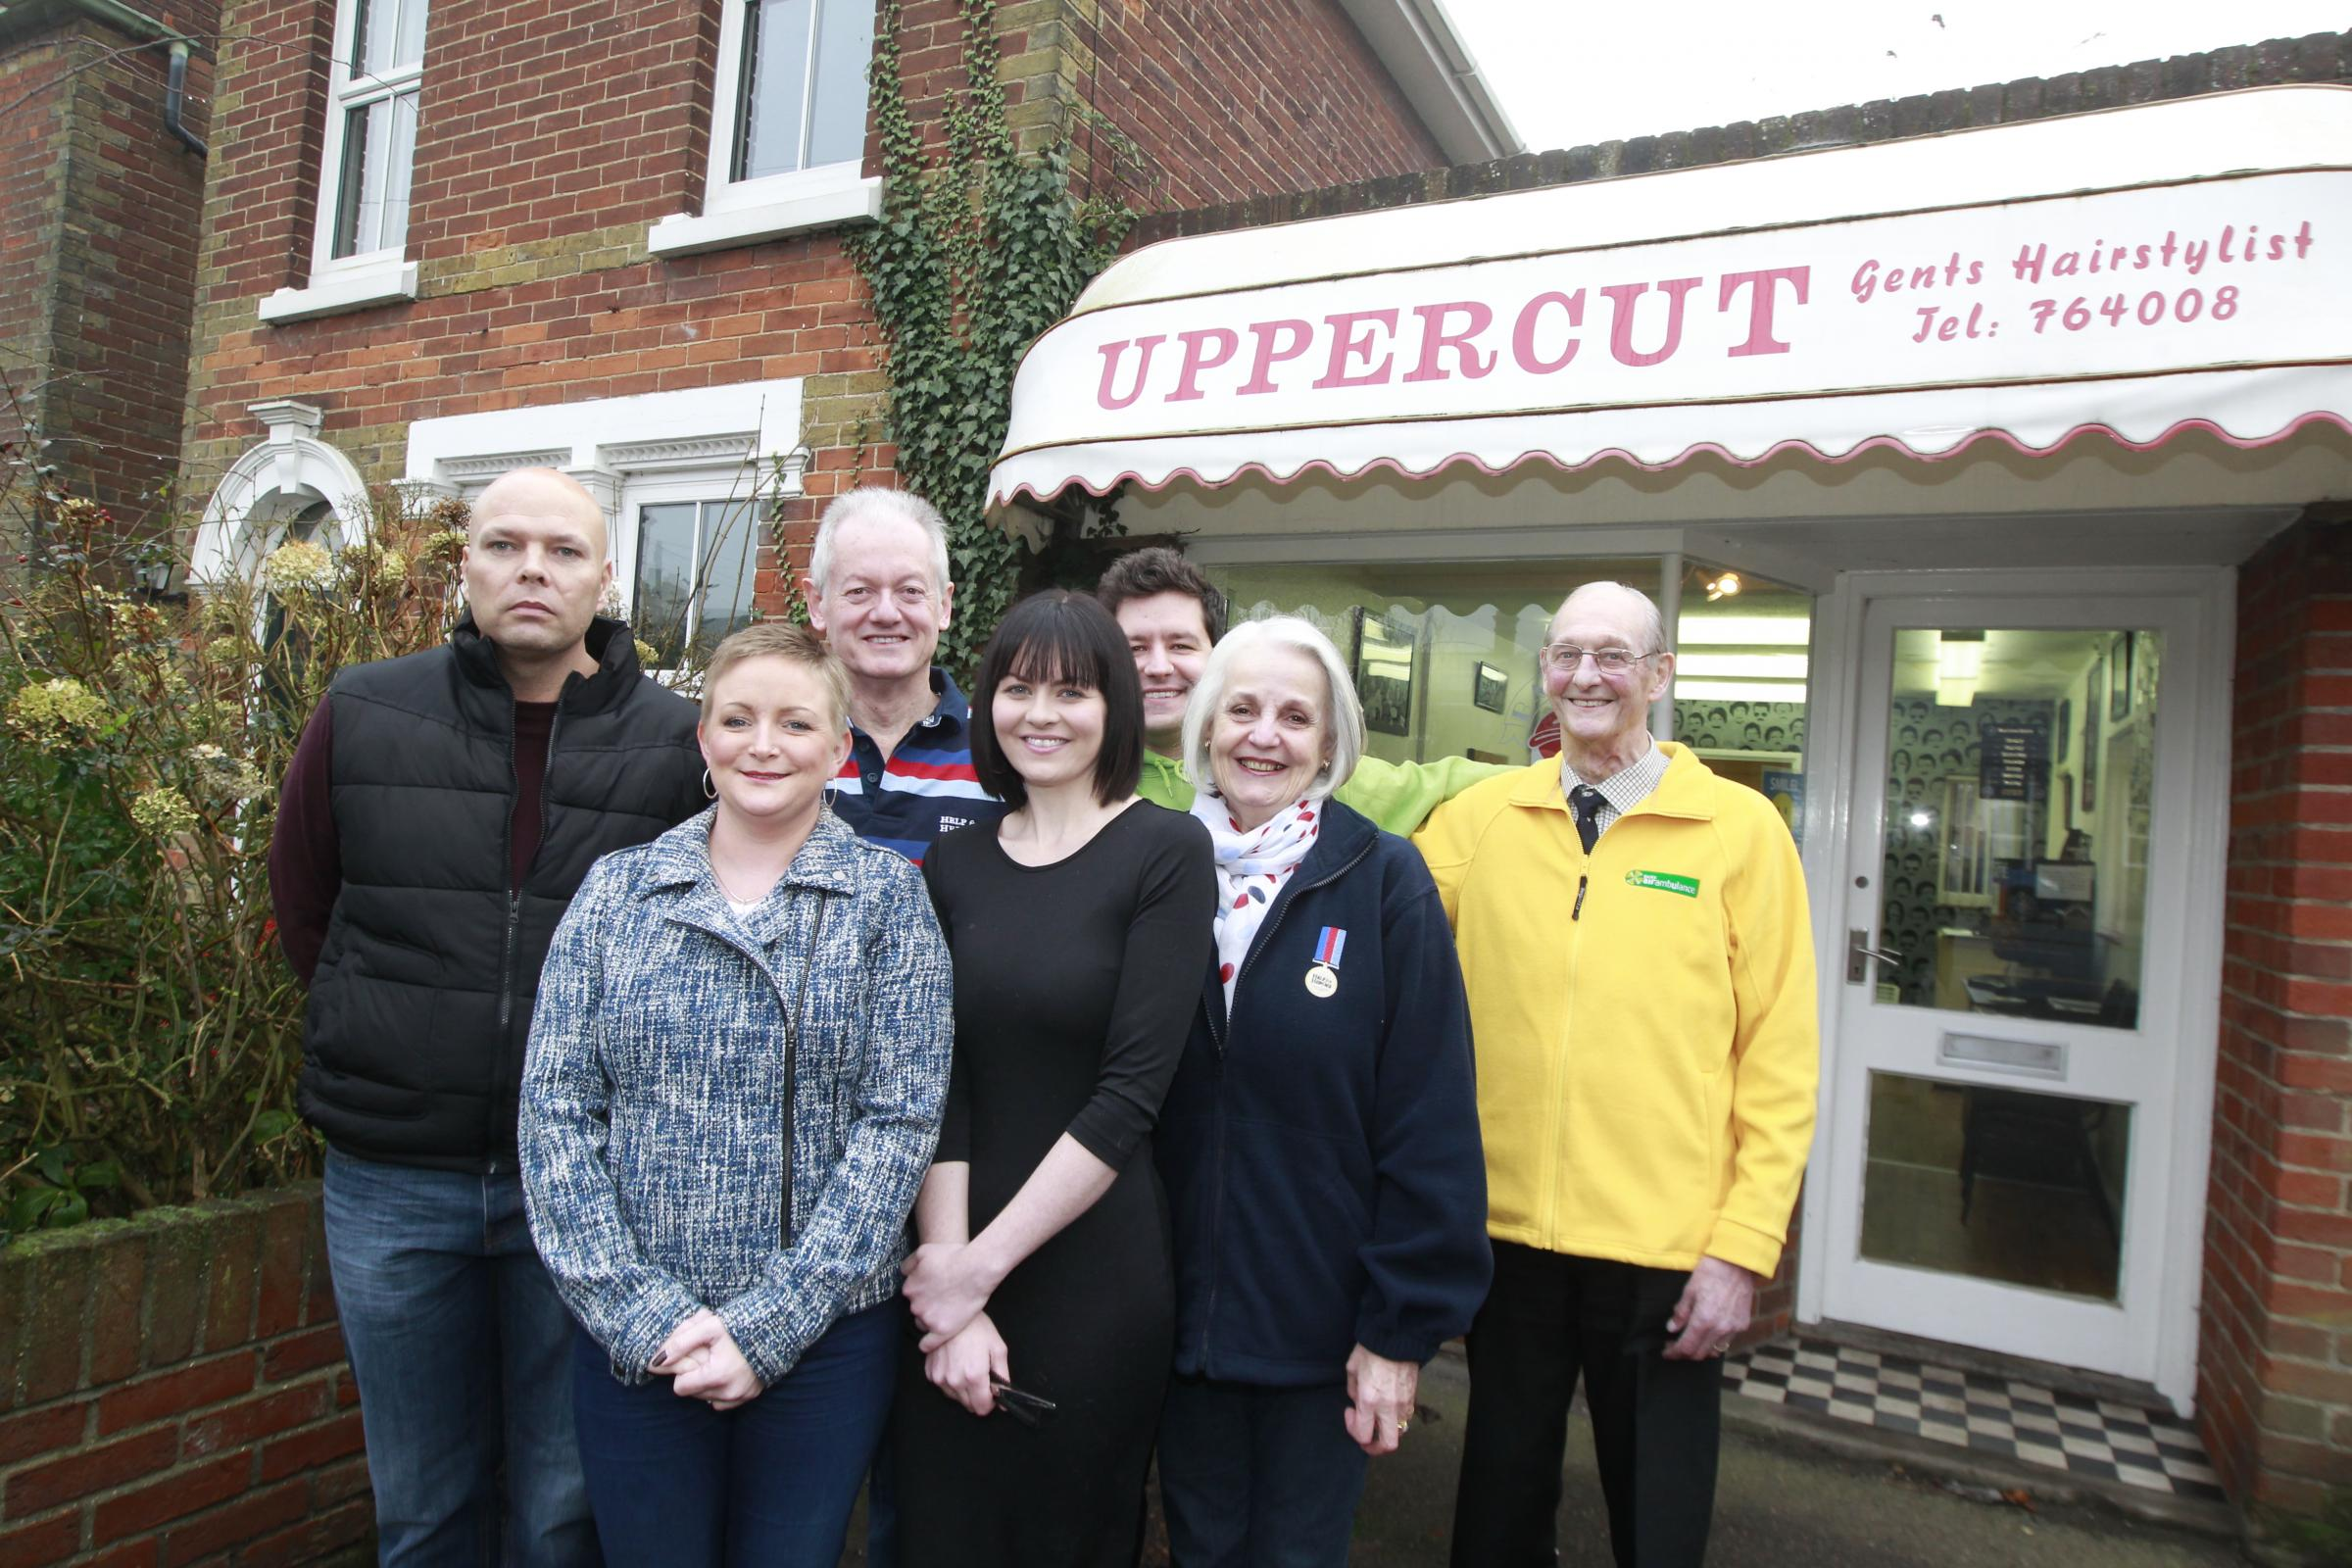 Crime-hit barbers give £2,500 to charities